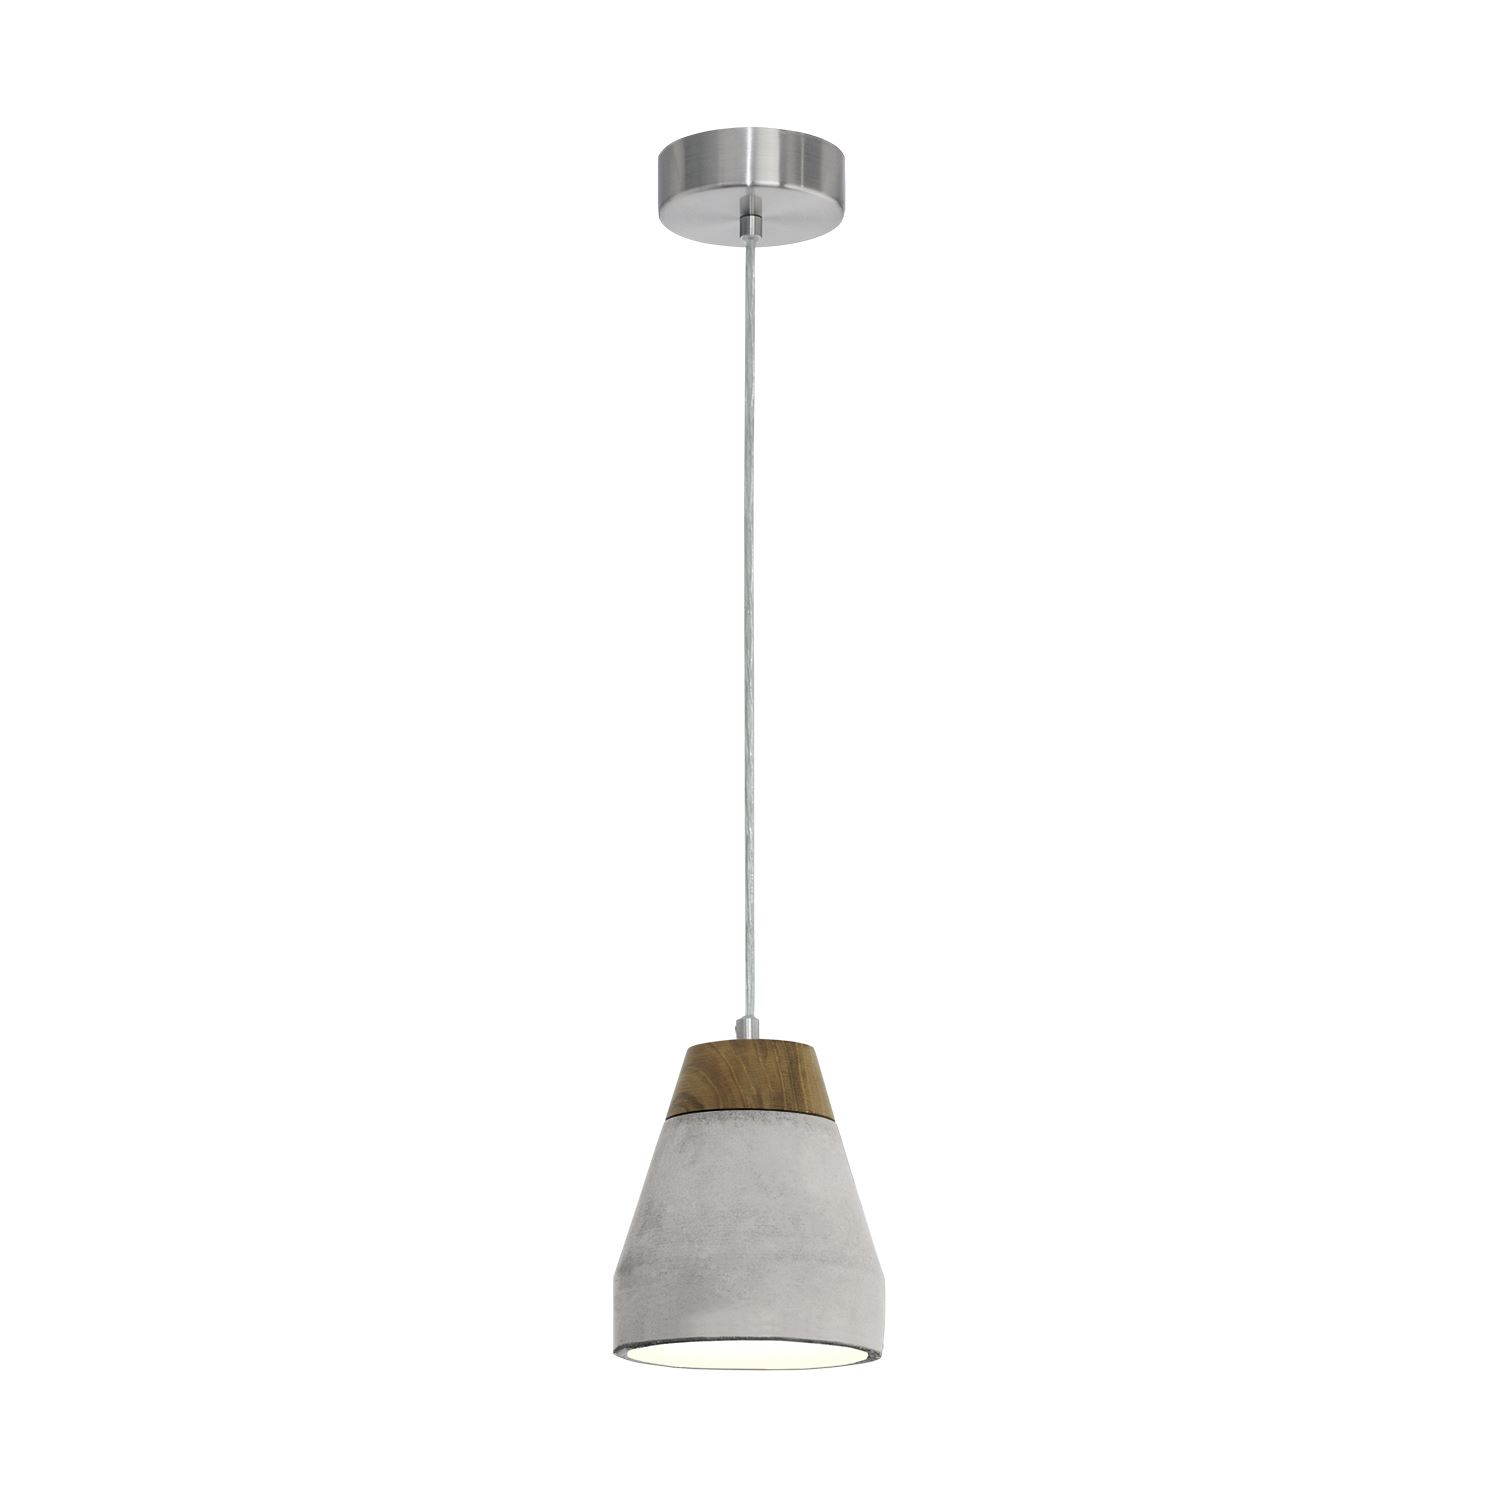 Tarega Pendant Hanging Light E27 Wood Concrete Brown Grey